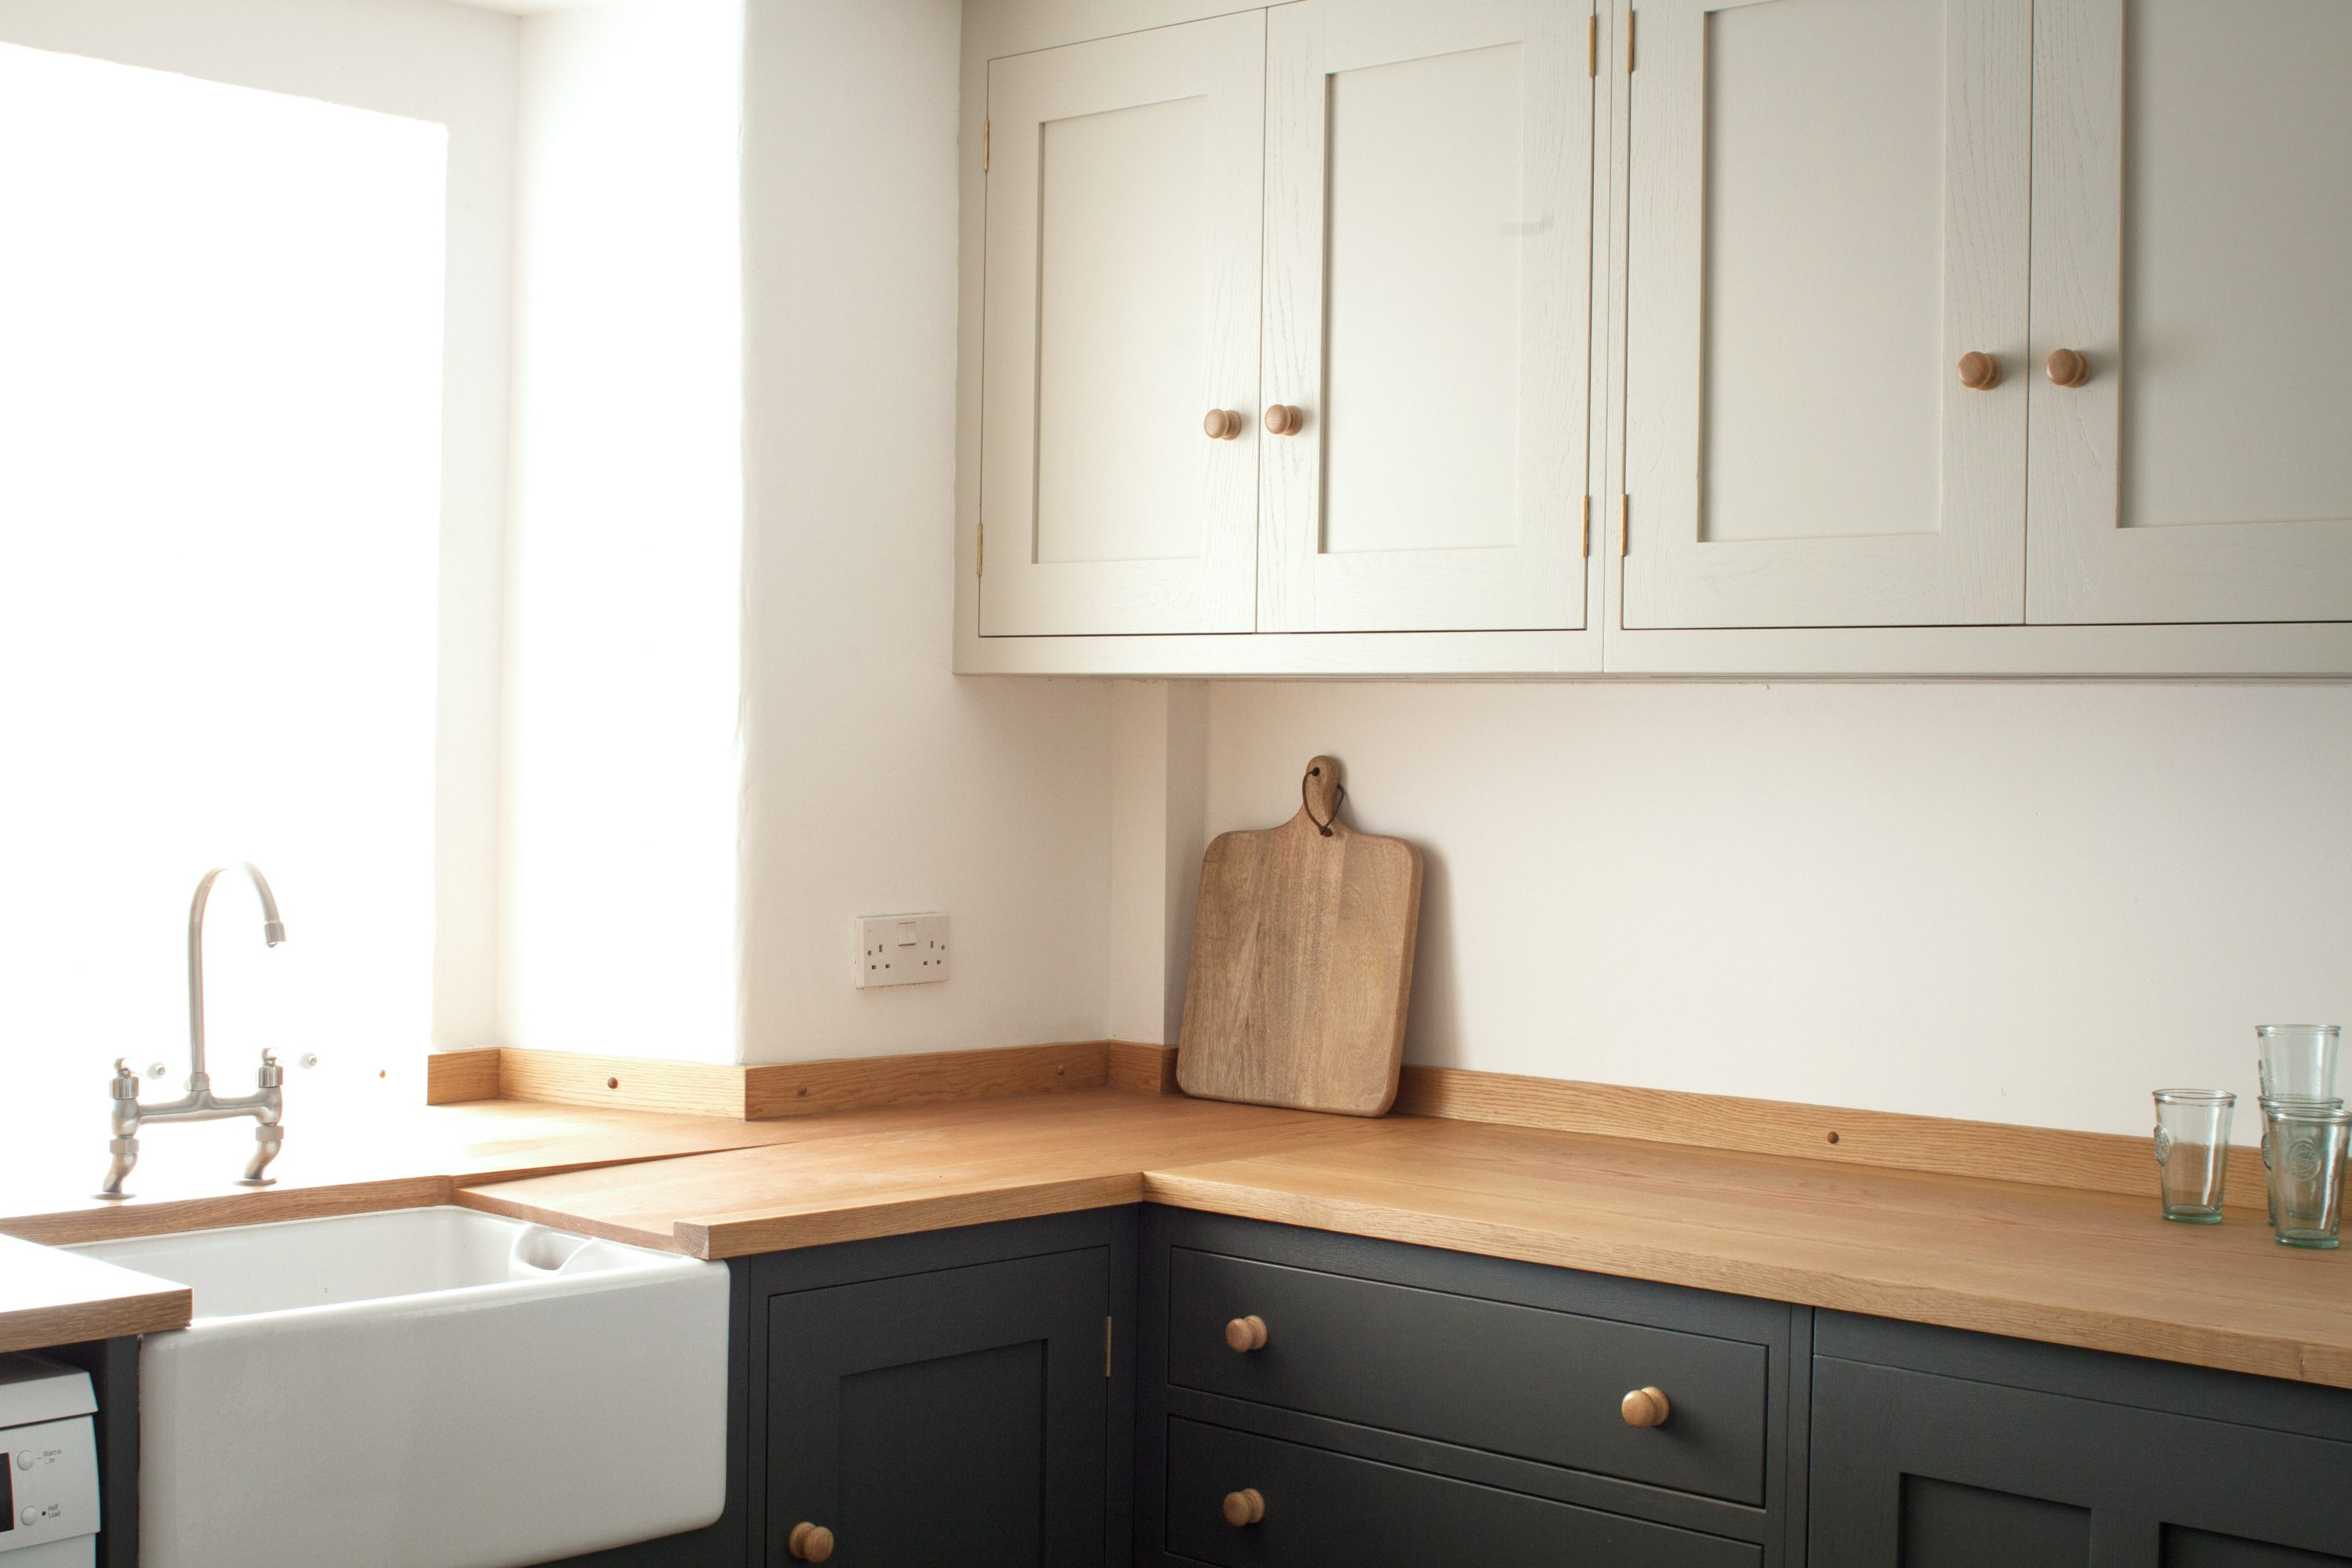 Farmhouse Sink Next To Oak Worktop In Shaker Style Kitchen Painted In  Farrow U0026 Ball Colours